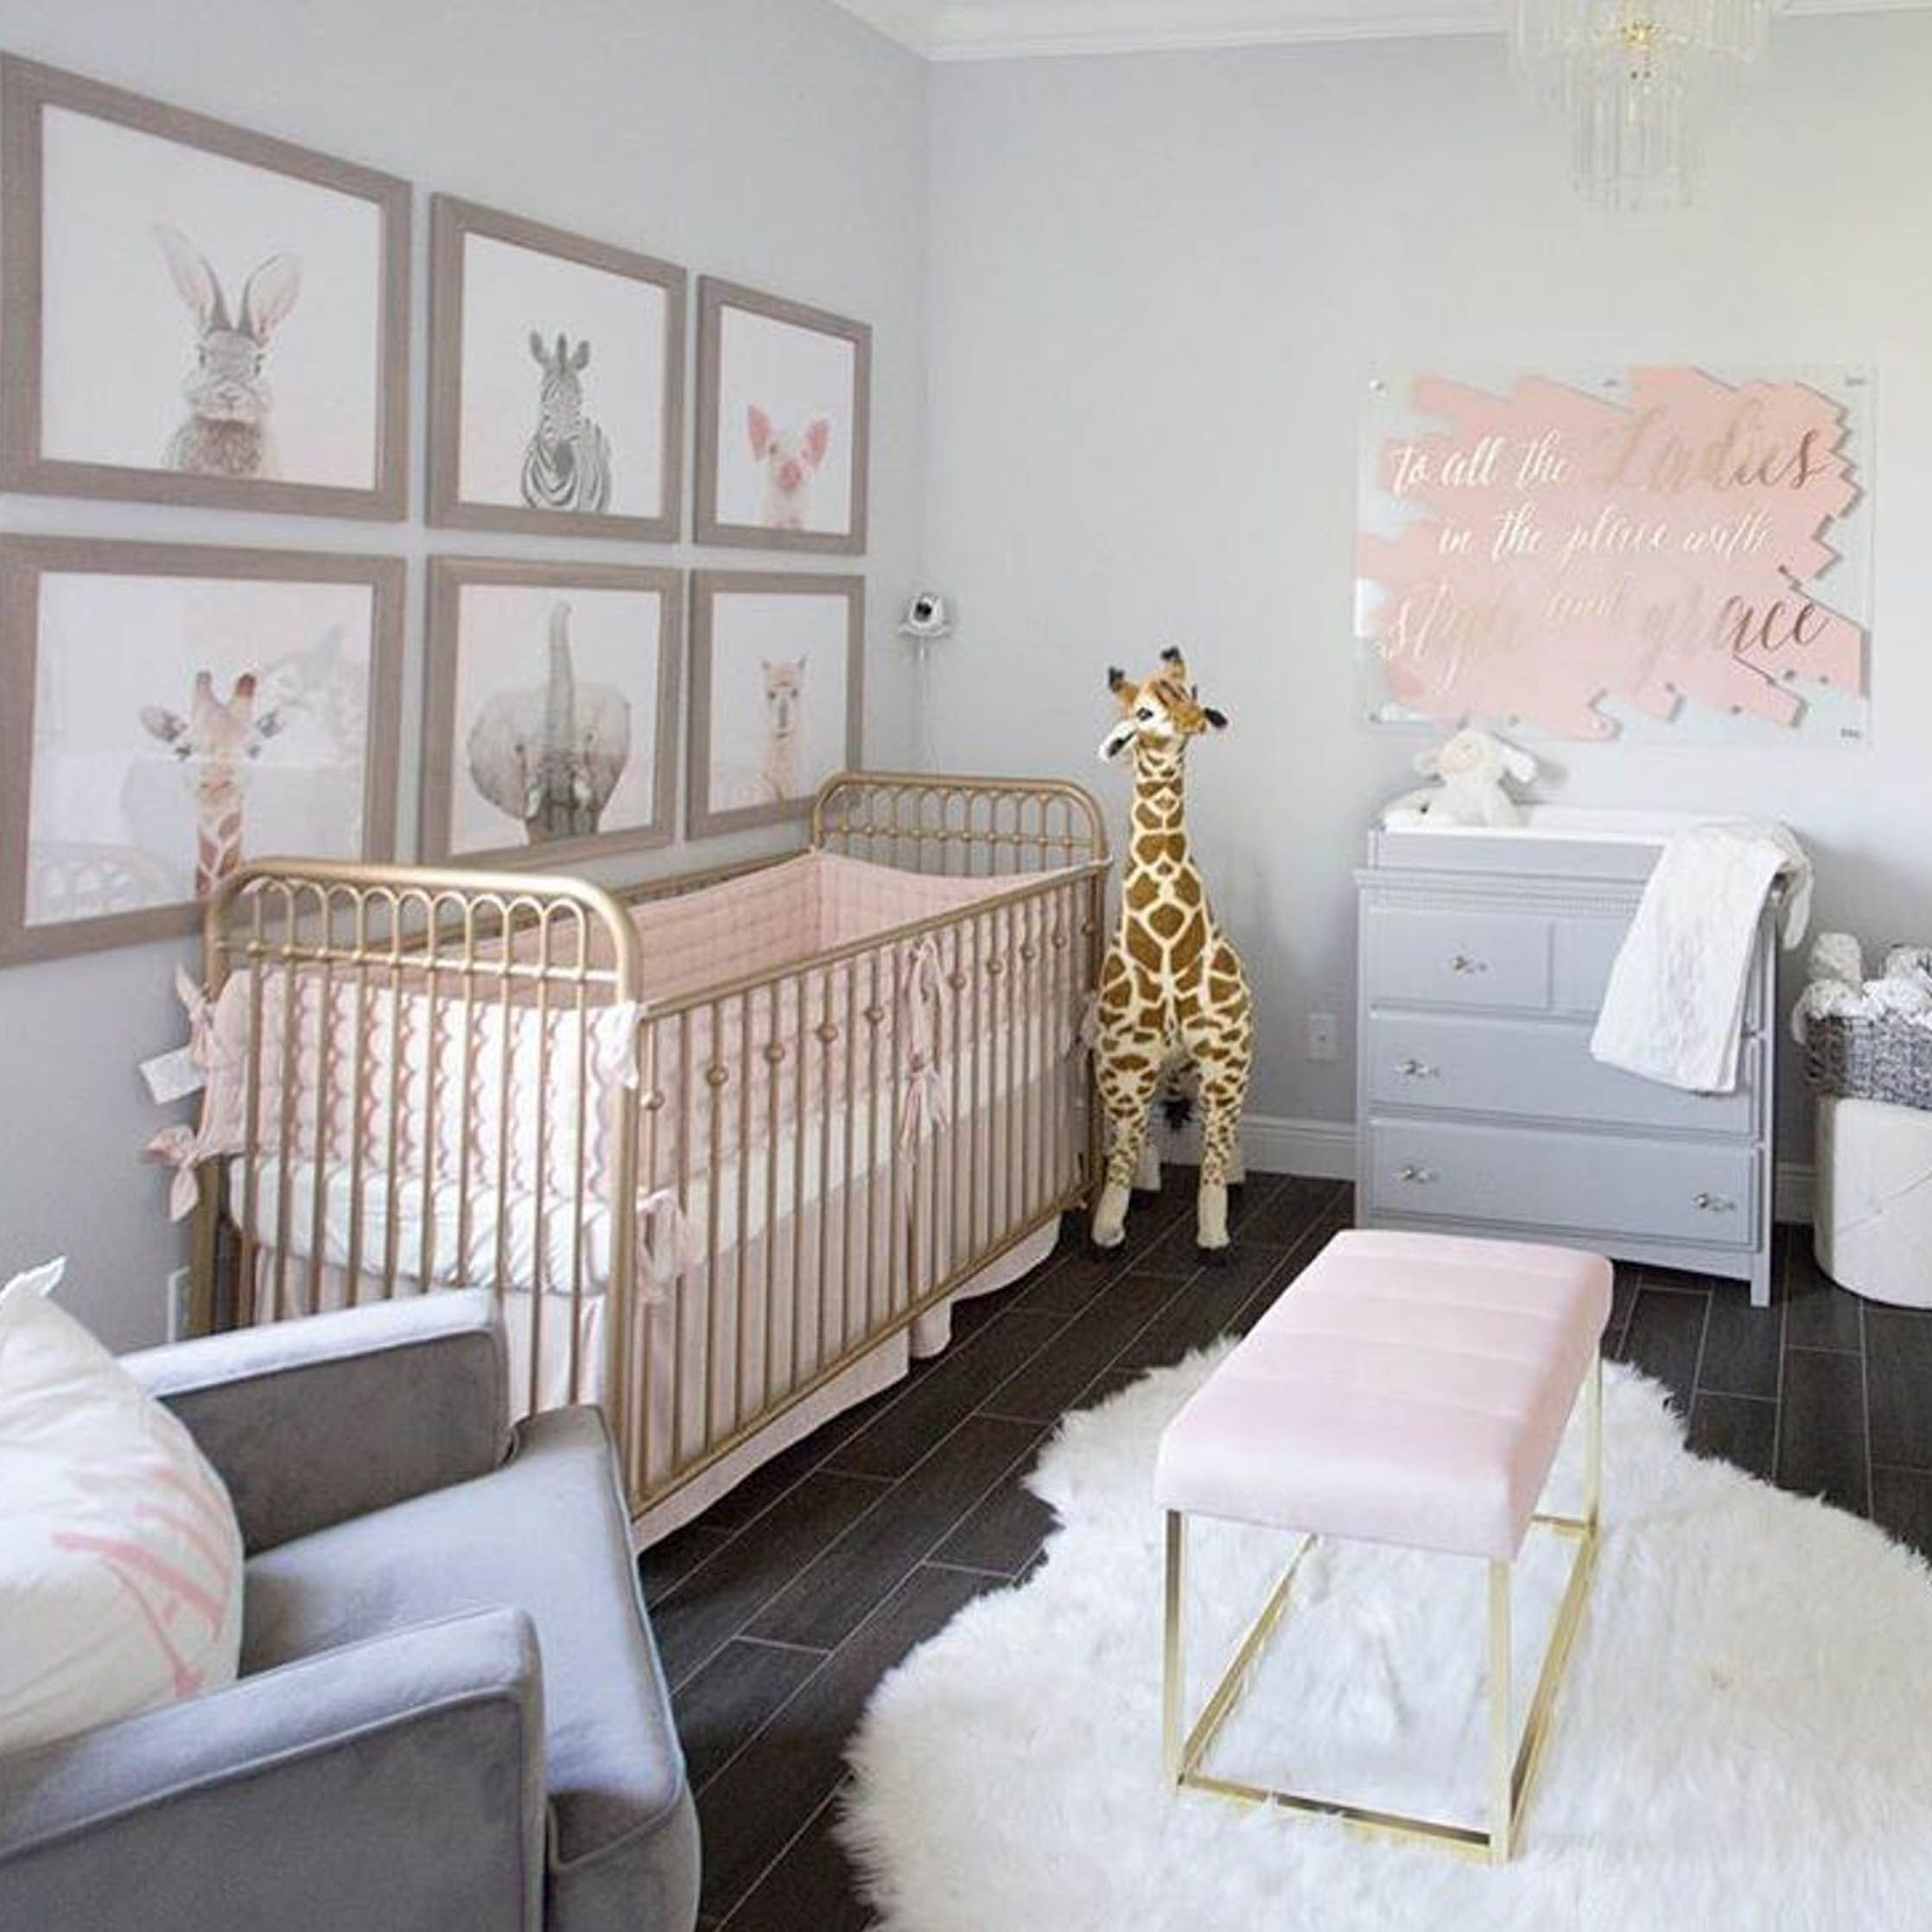 Tips For Decorating A Small Nursery: Here's What's Trending In The Nursery